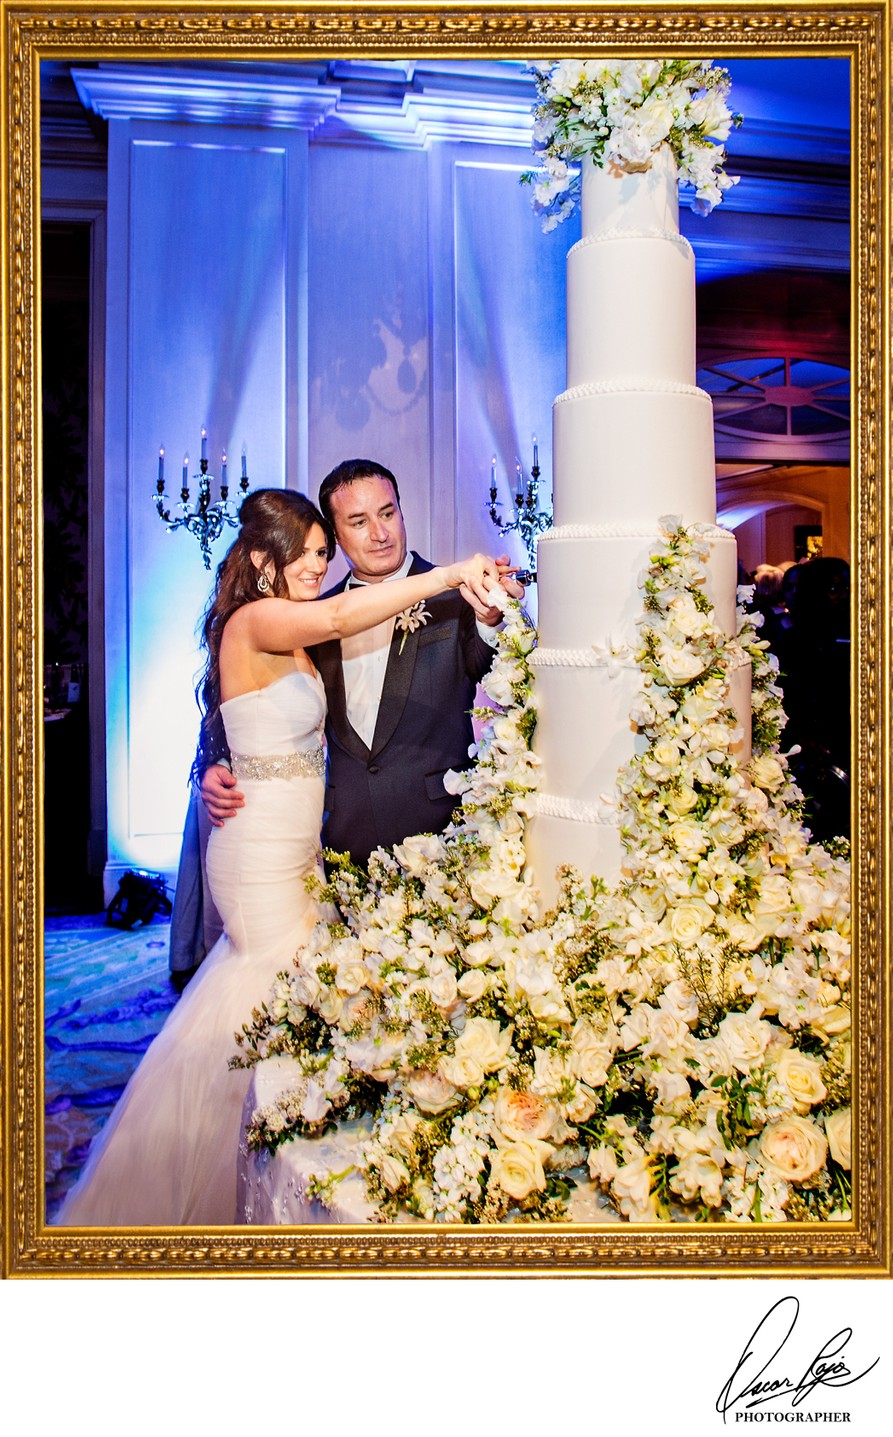 Ritz Carlton weddings, NOLA, wedding cake, bride, groom